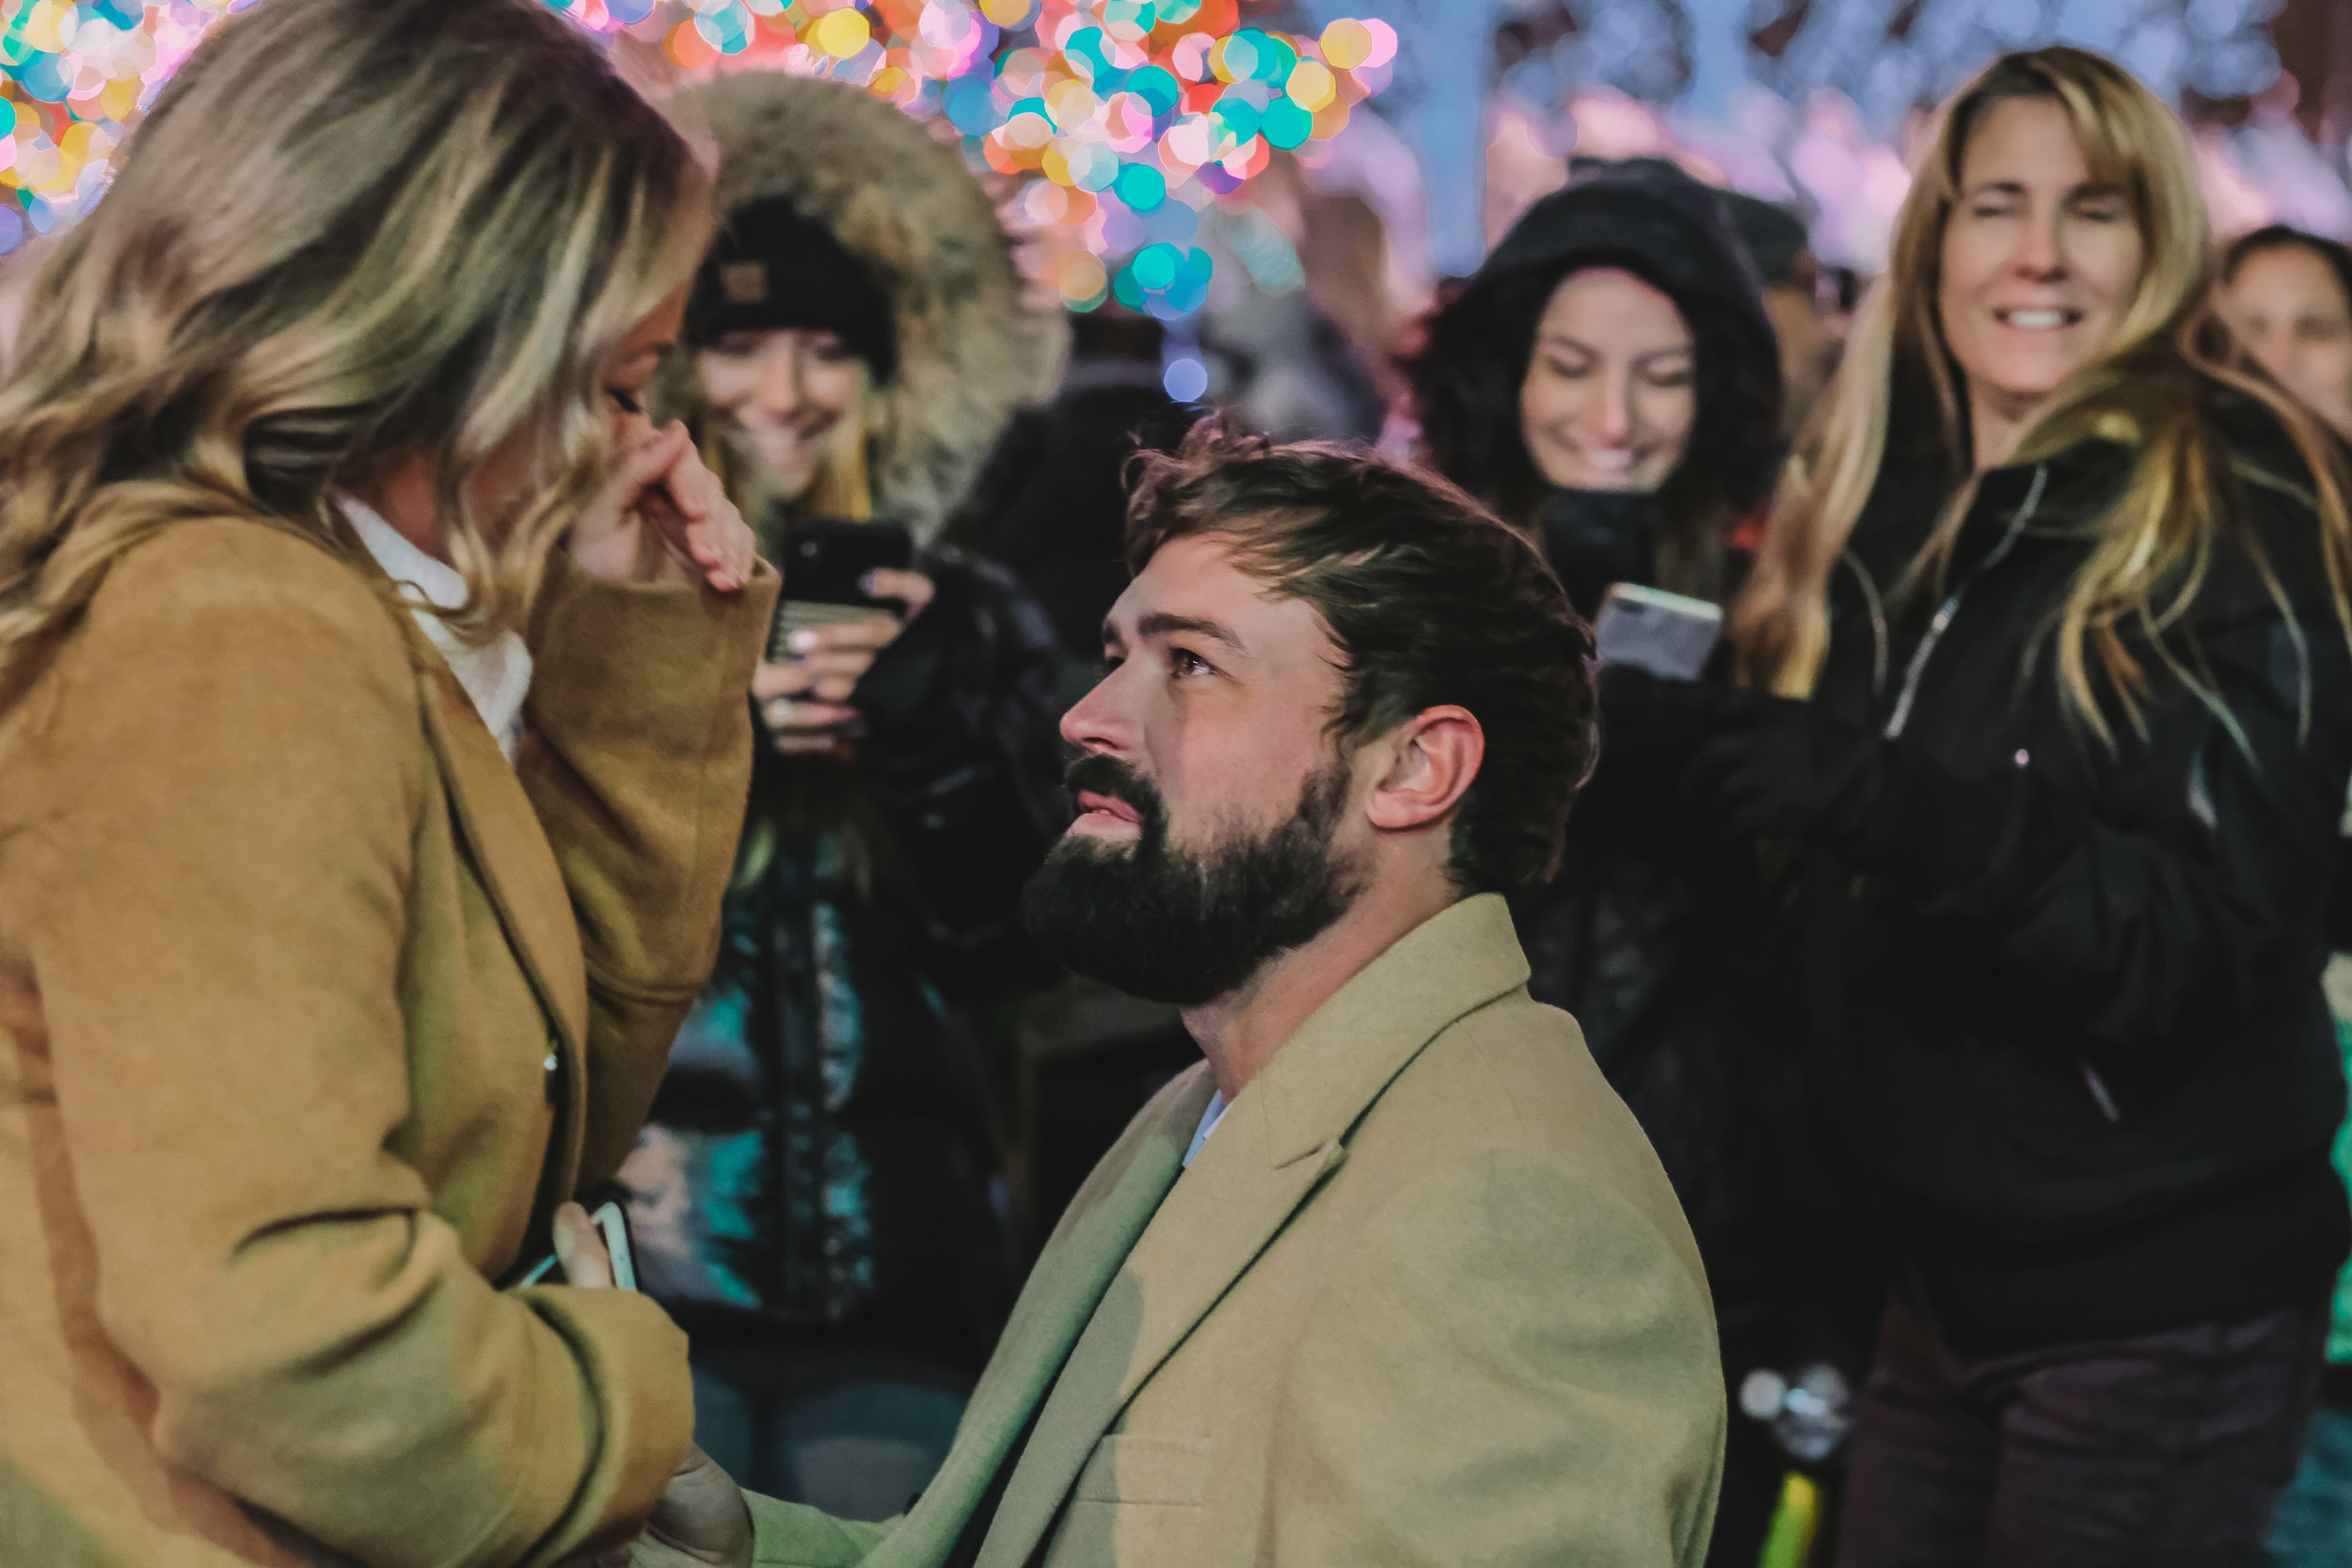 Before Lora even knew she was being proposed to, the crowd was already chanting oh my gosh, he's proposing and cheered along!